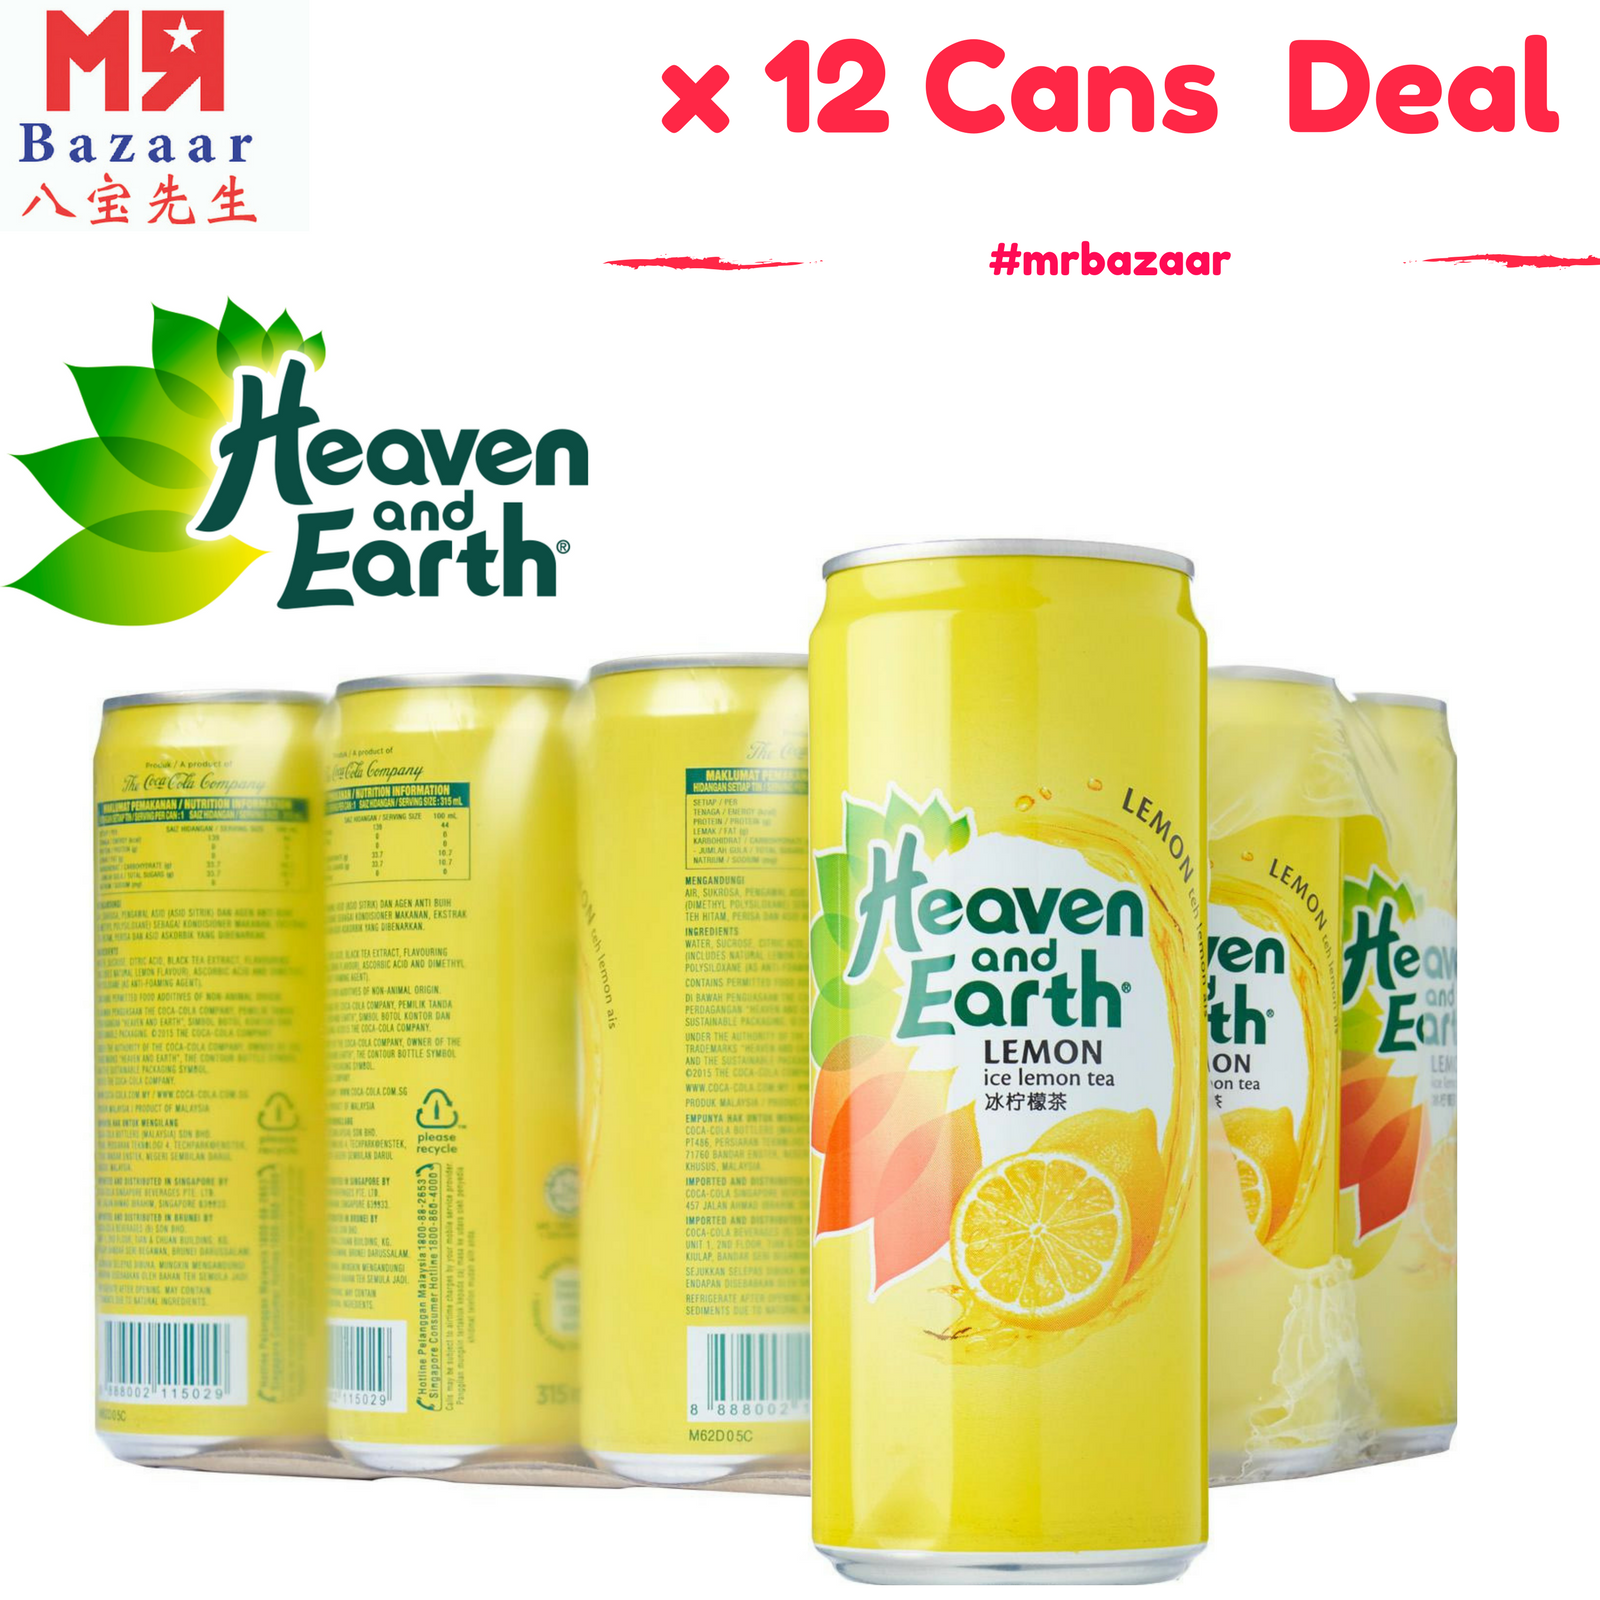 Heaven & Earth Ice Lemon Tea (300ml) x 12 Cans Deal